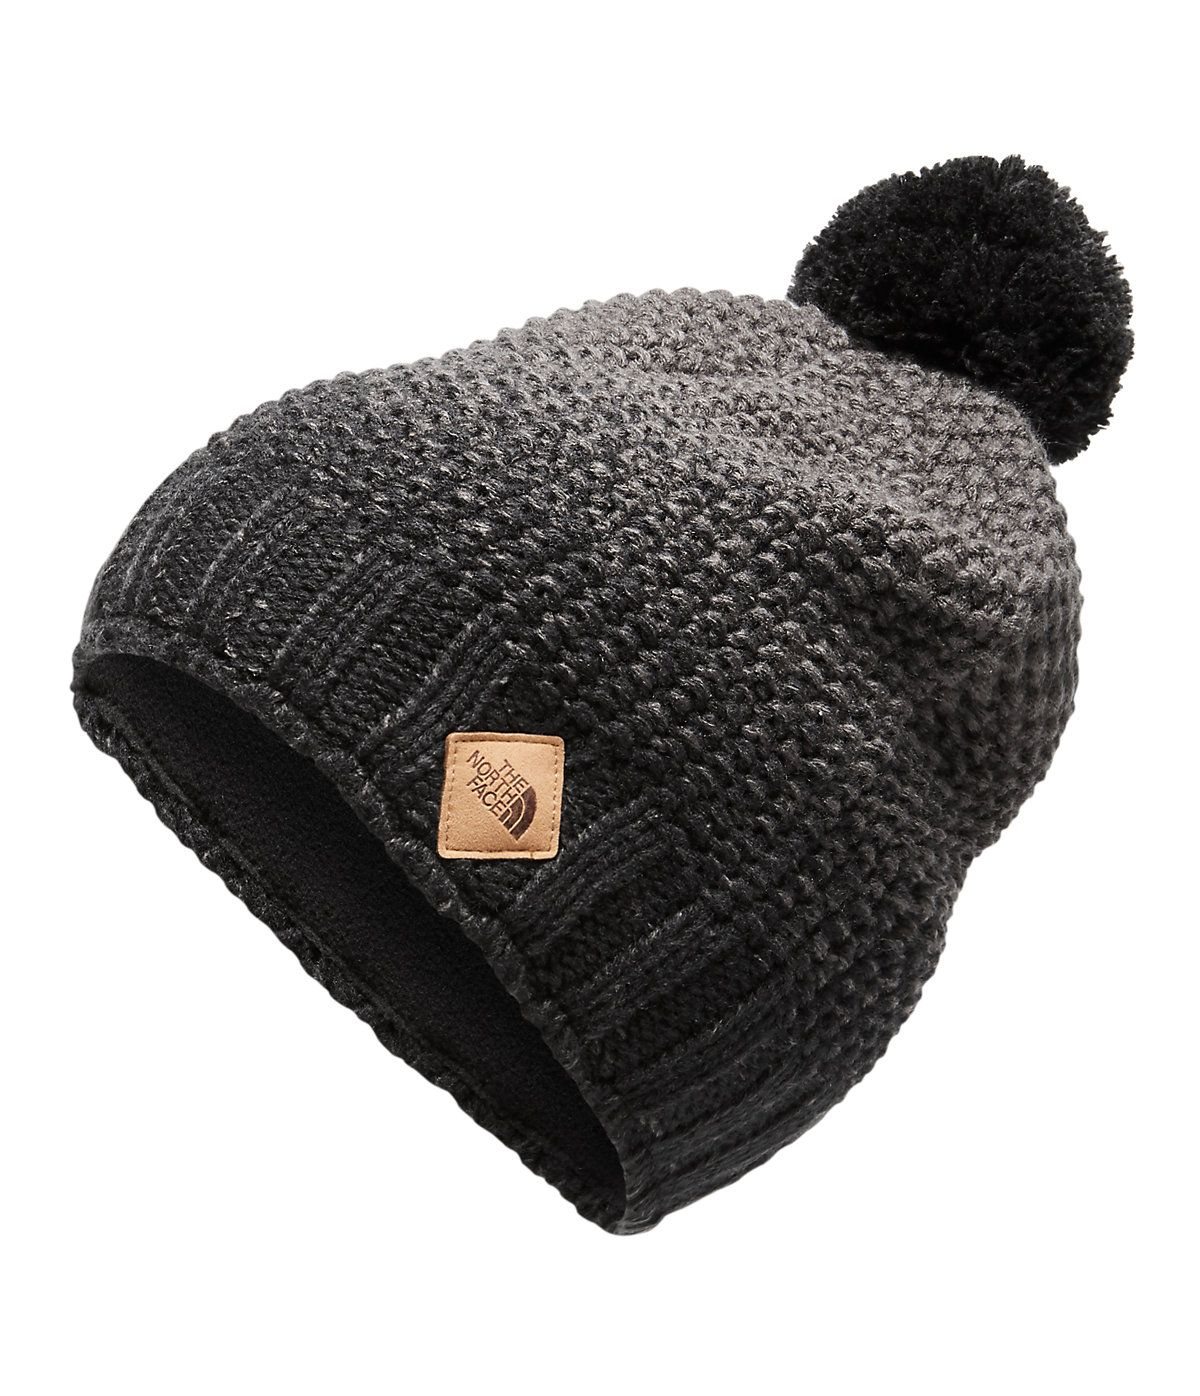 8ef48e560799 The North Face Antlers Beanie Hat in 2019   Products   Beanie, How ...